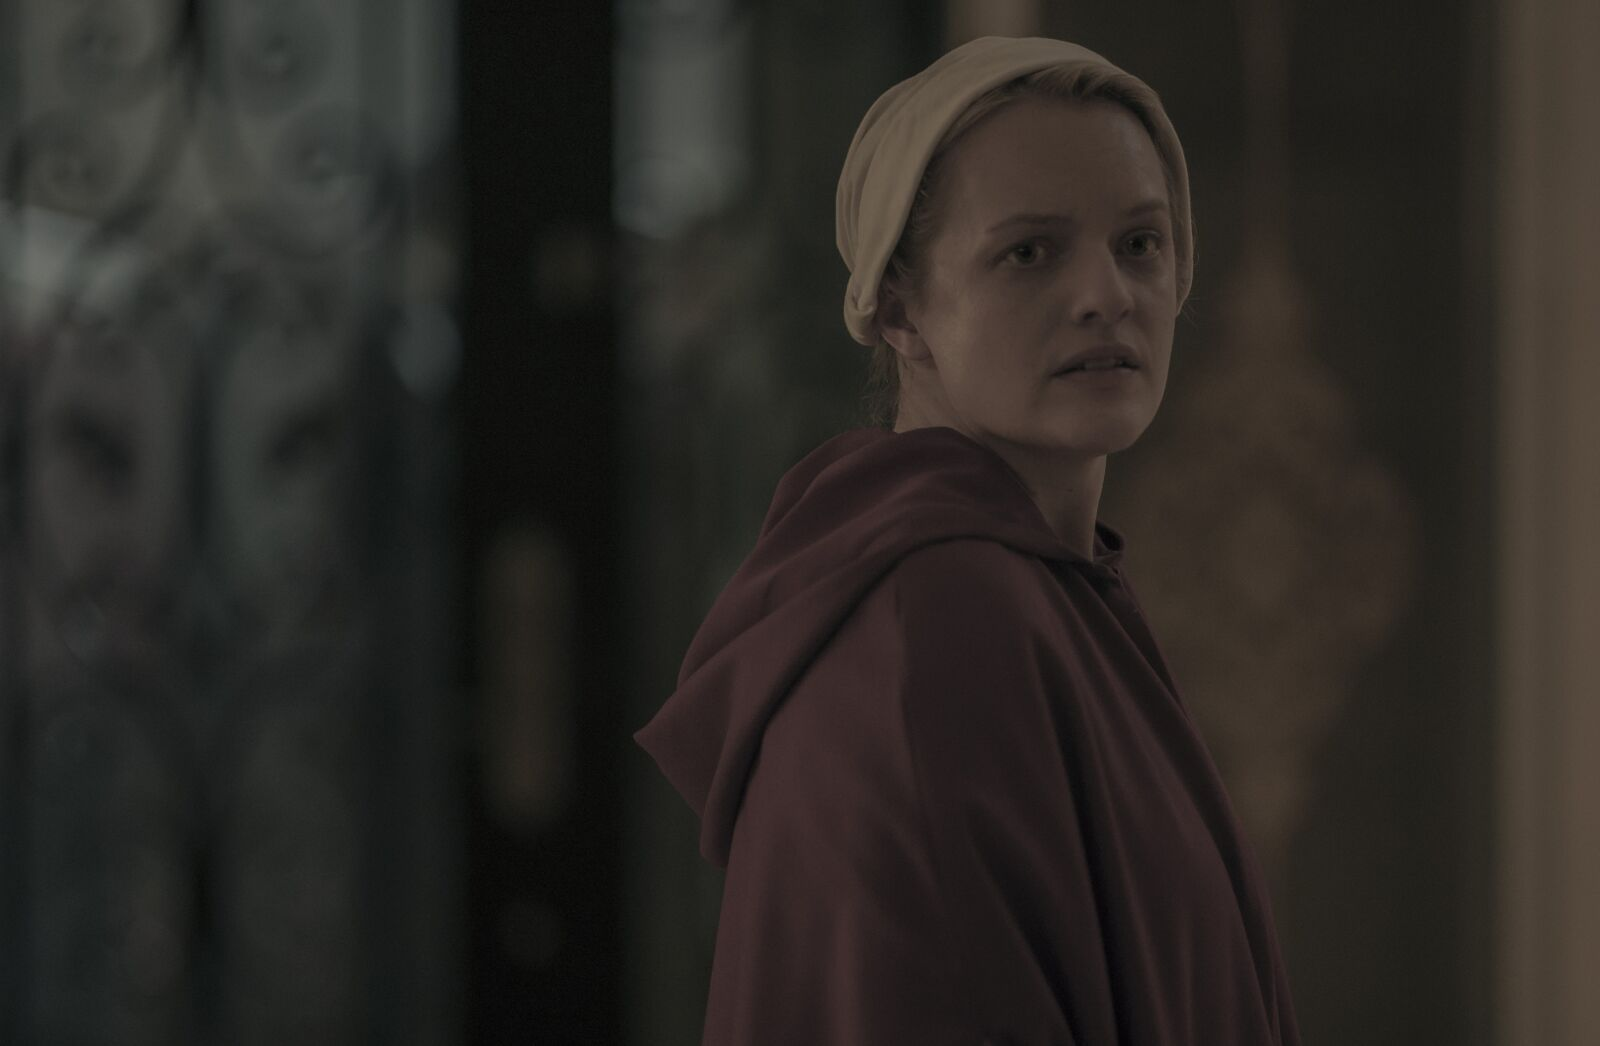 The Handmaid's Tale Episode 304 review: God Bless The Child